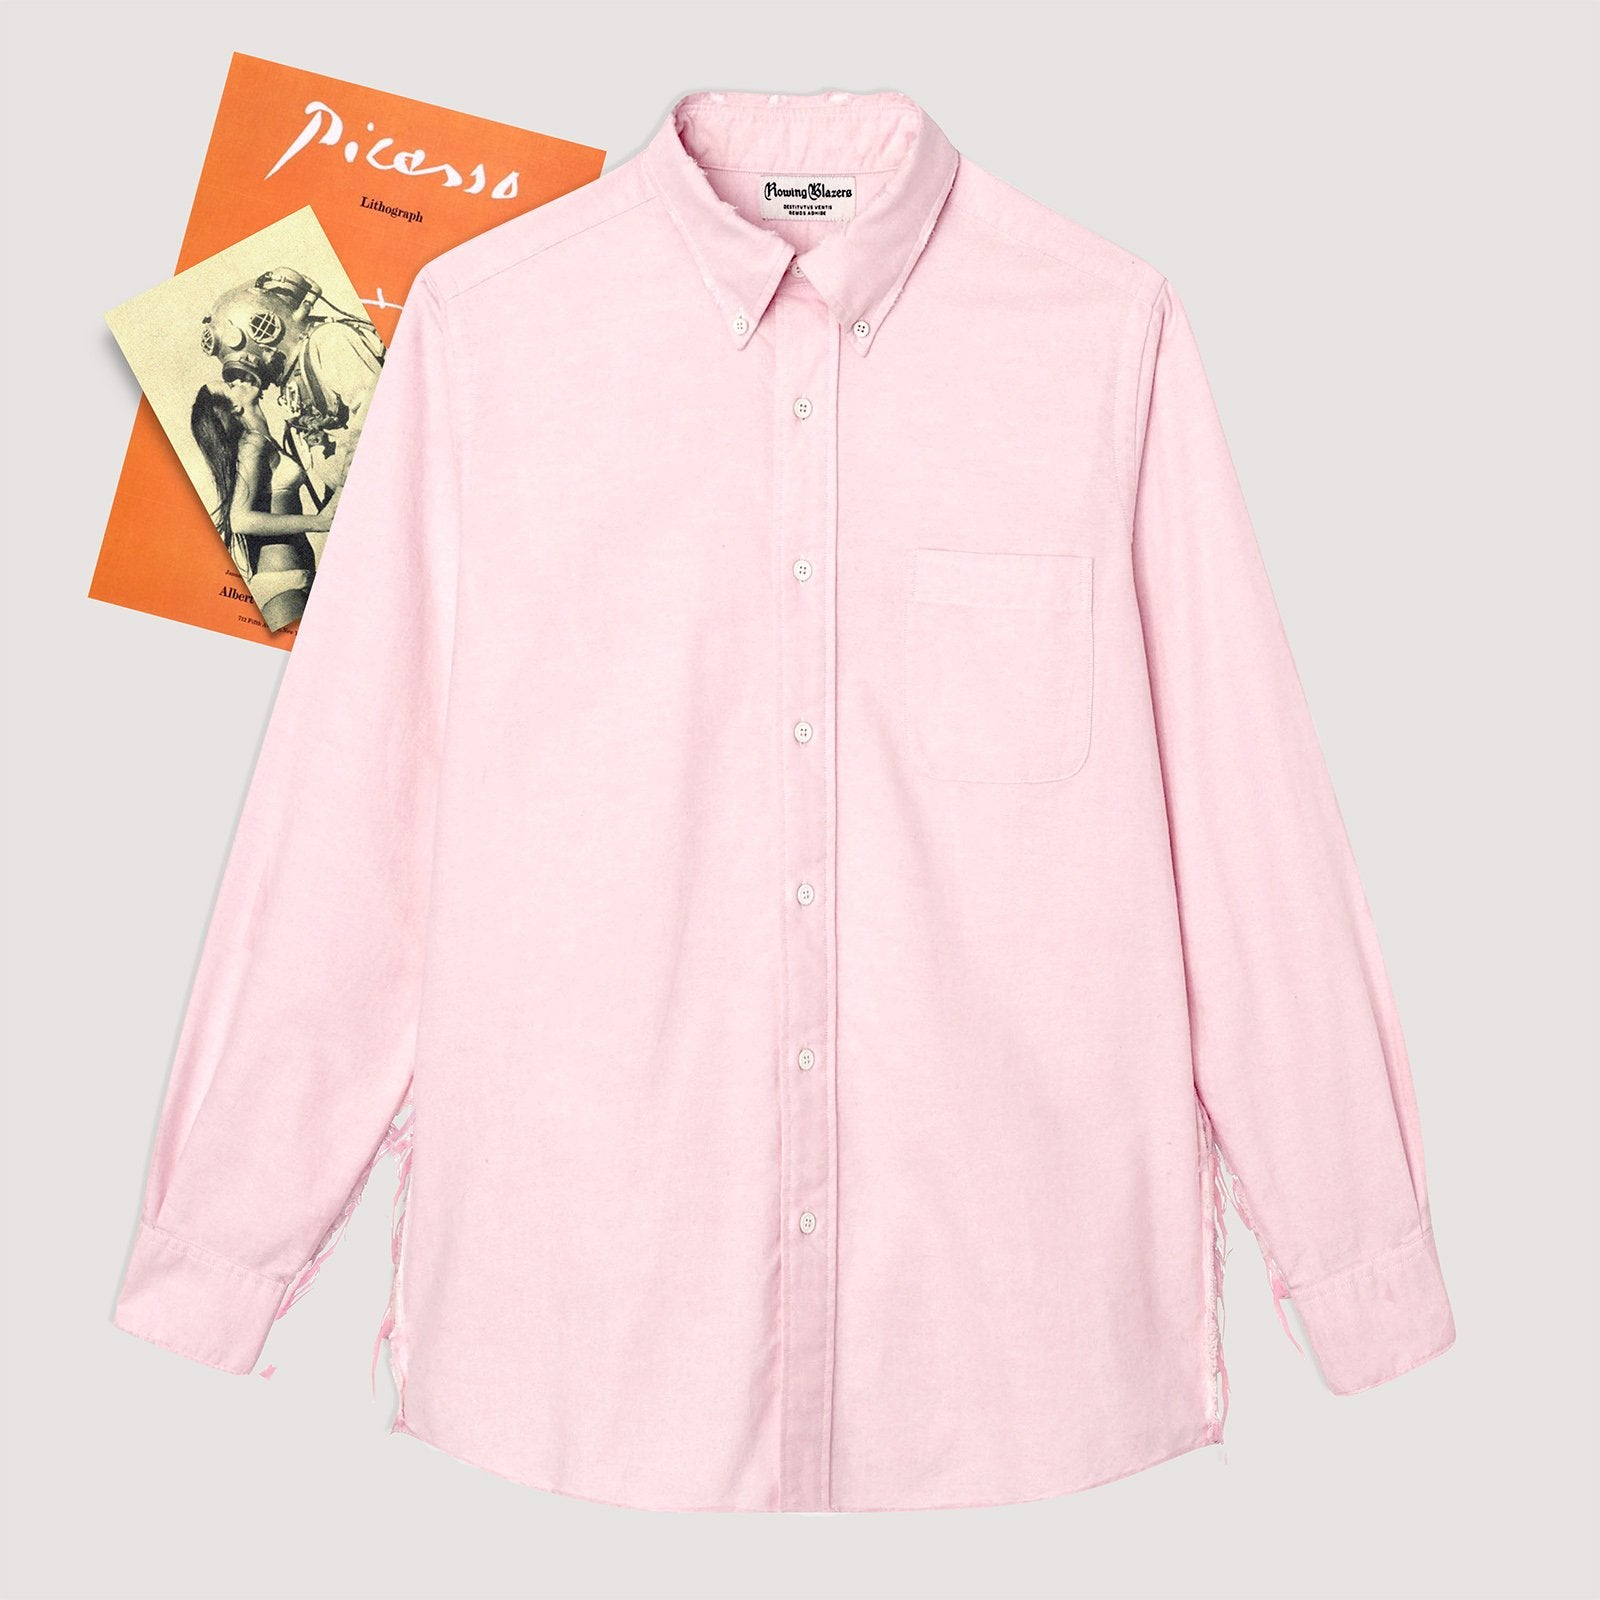 Rowing Blazers Distressed Oxford With Busted Seams - Pink